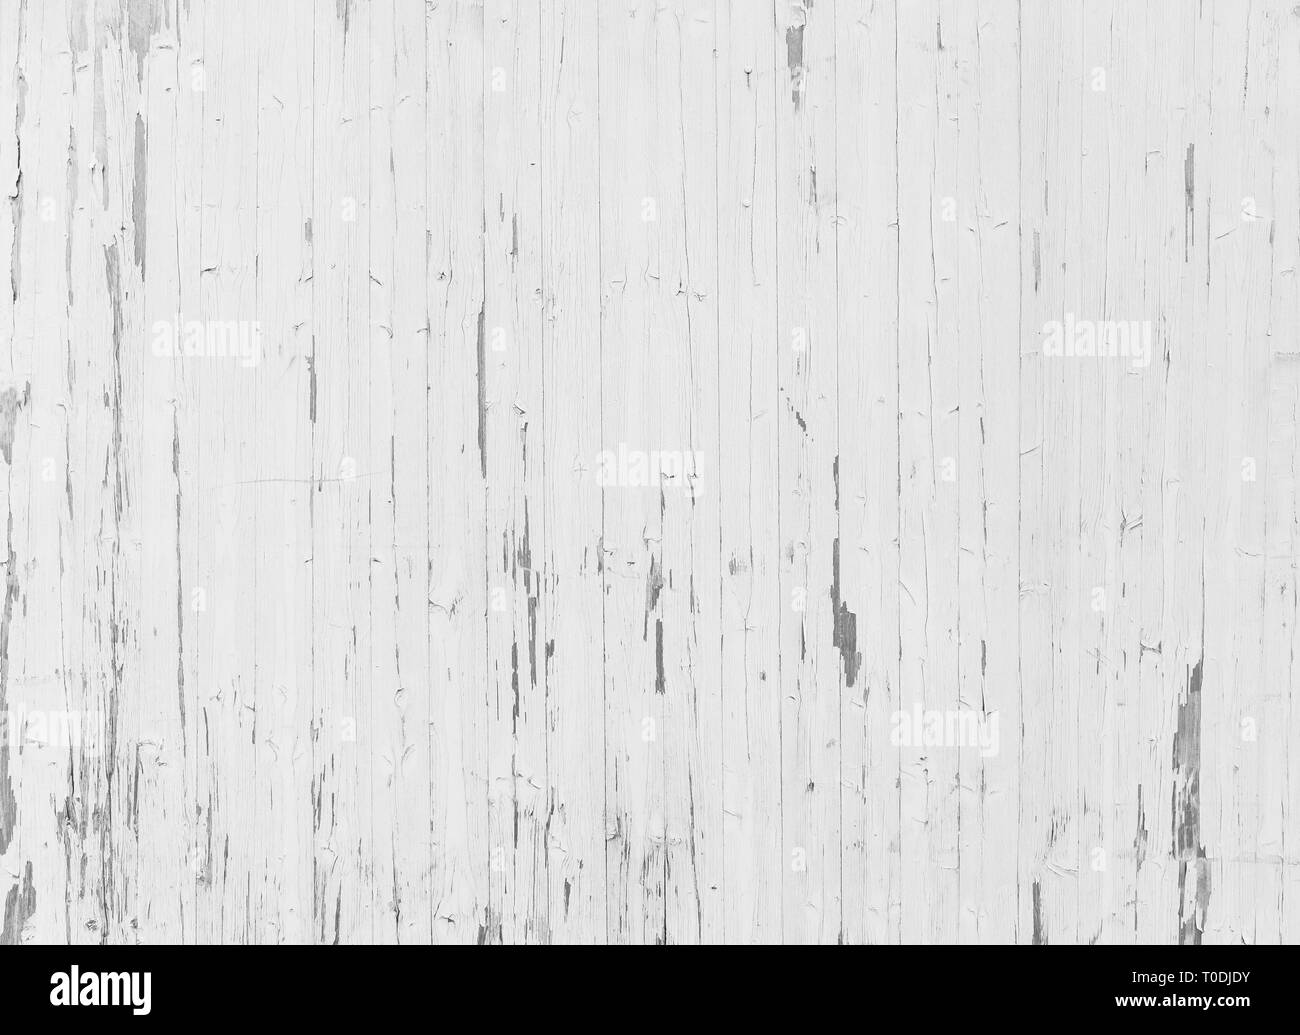 High resolution full frame background of a weathered wooden wall or wood paneling in black and white, paint peeling off. Stock Photo